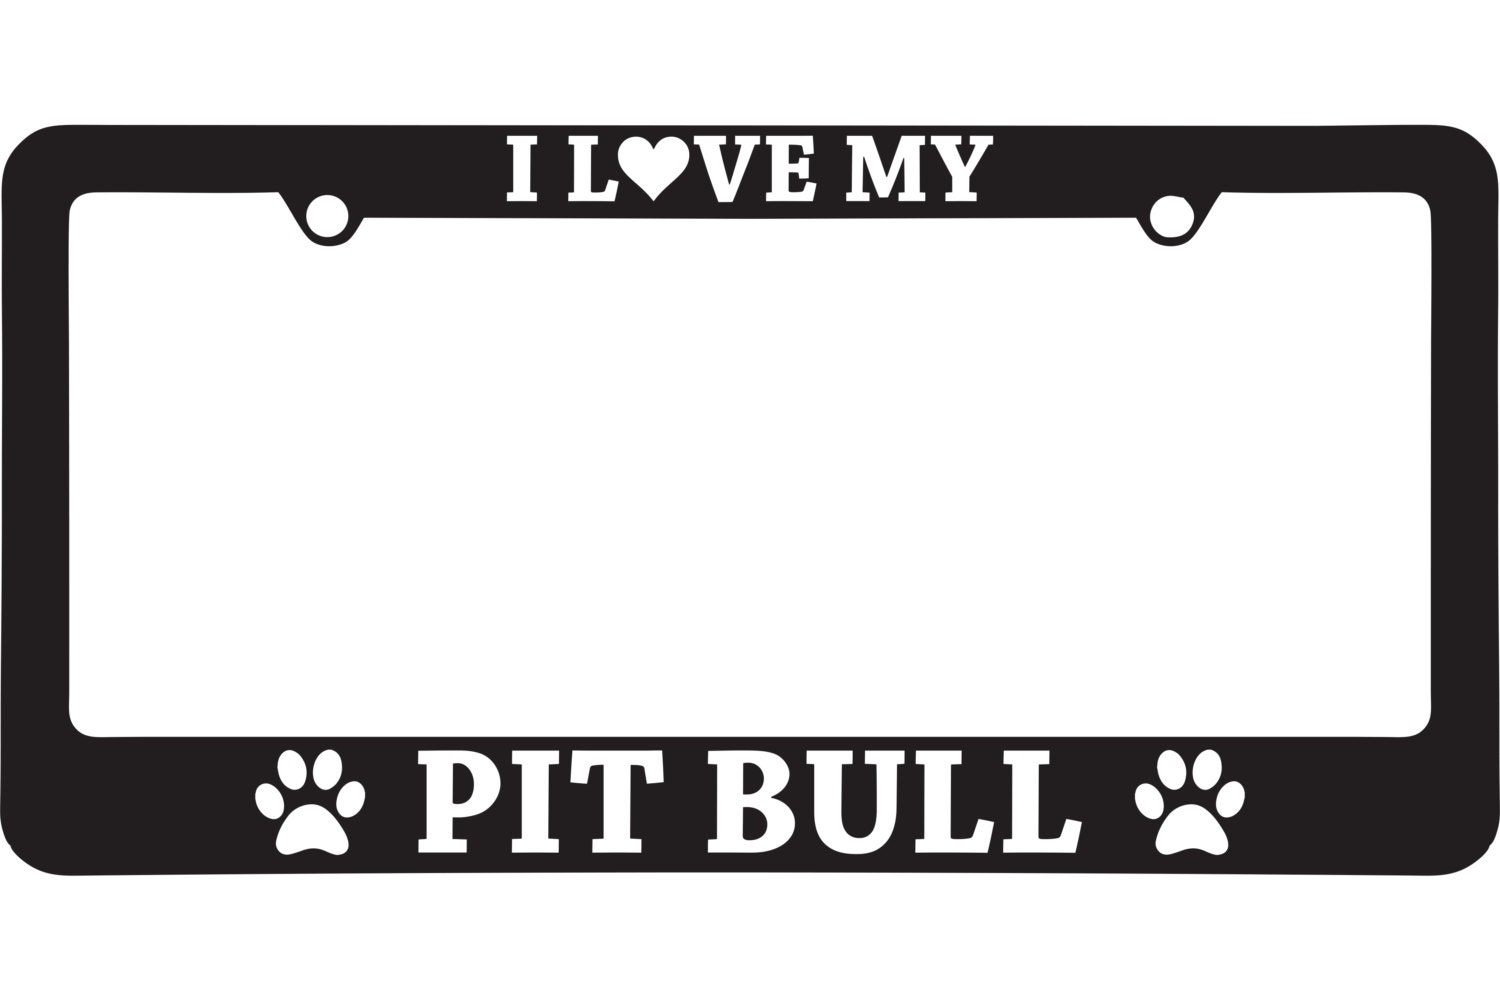 Sale I Love My Pit Bull License Plate Frame 10 Proceeds To